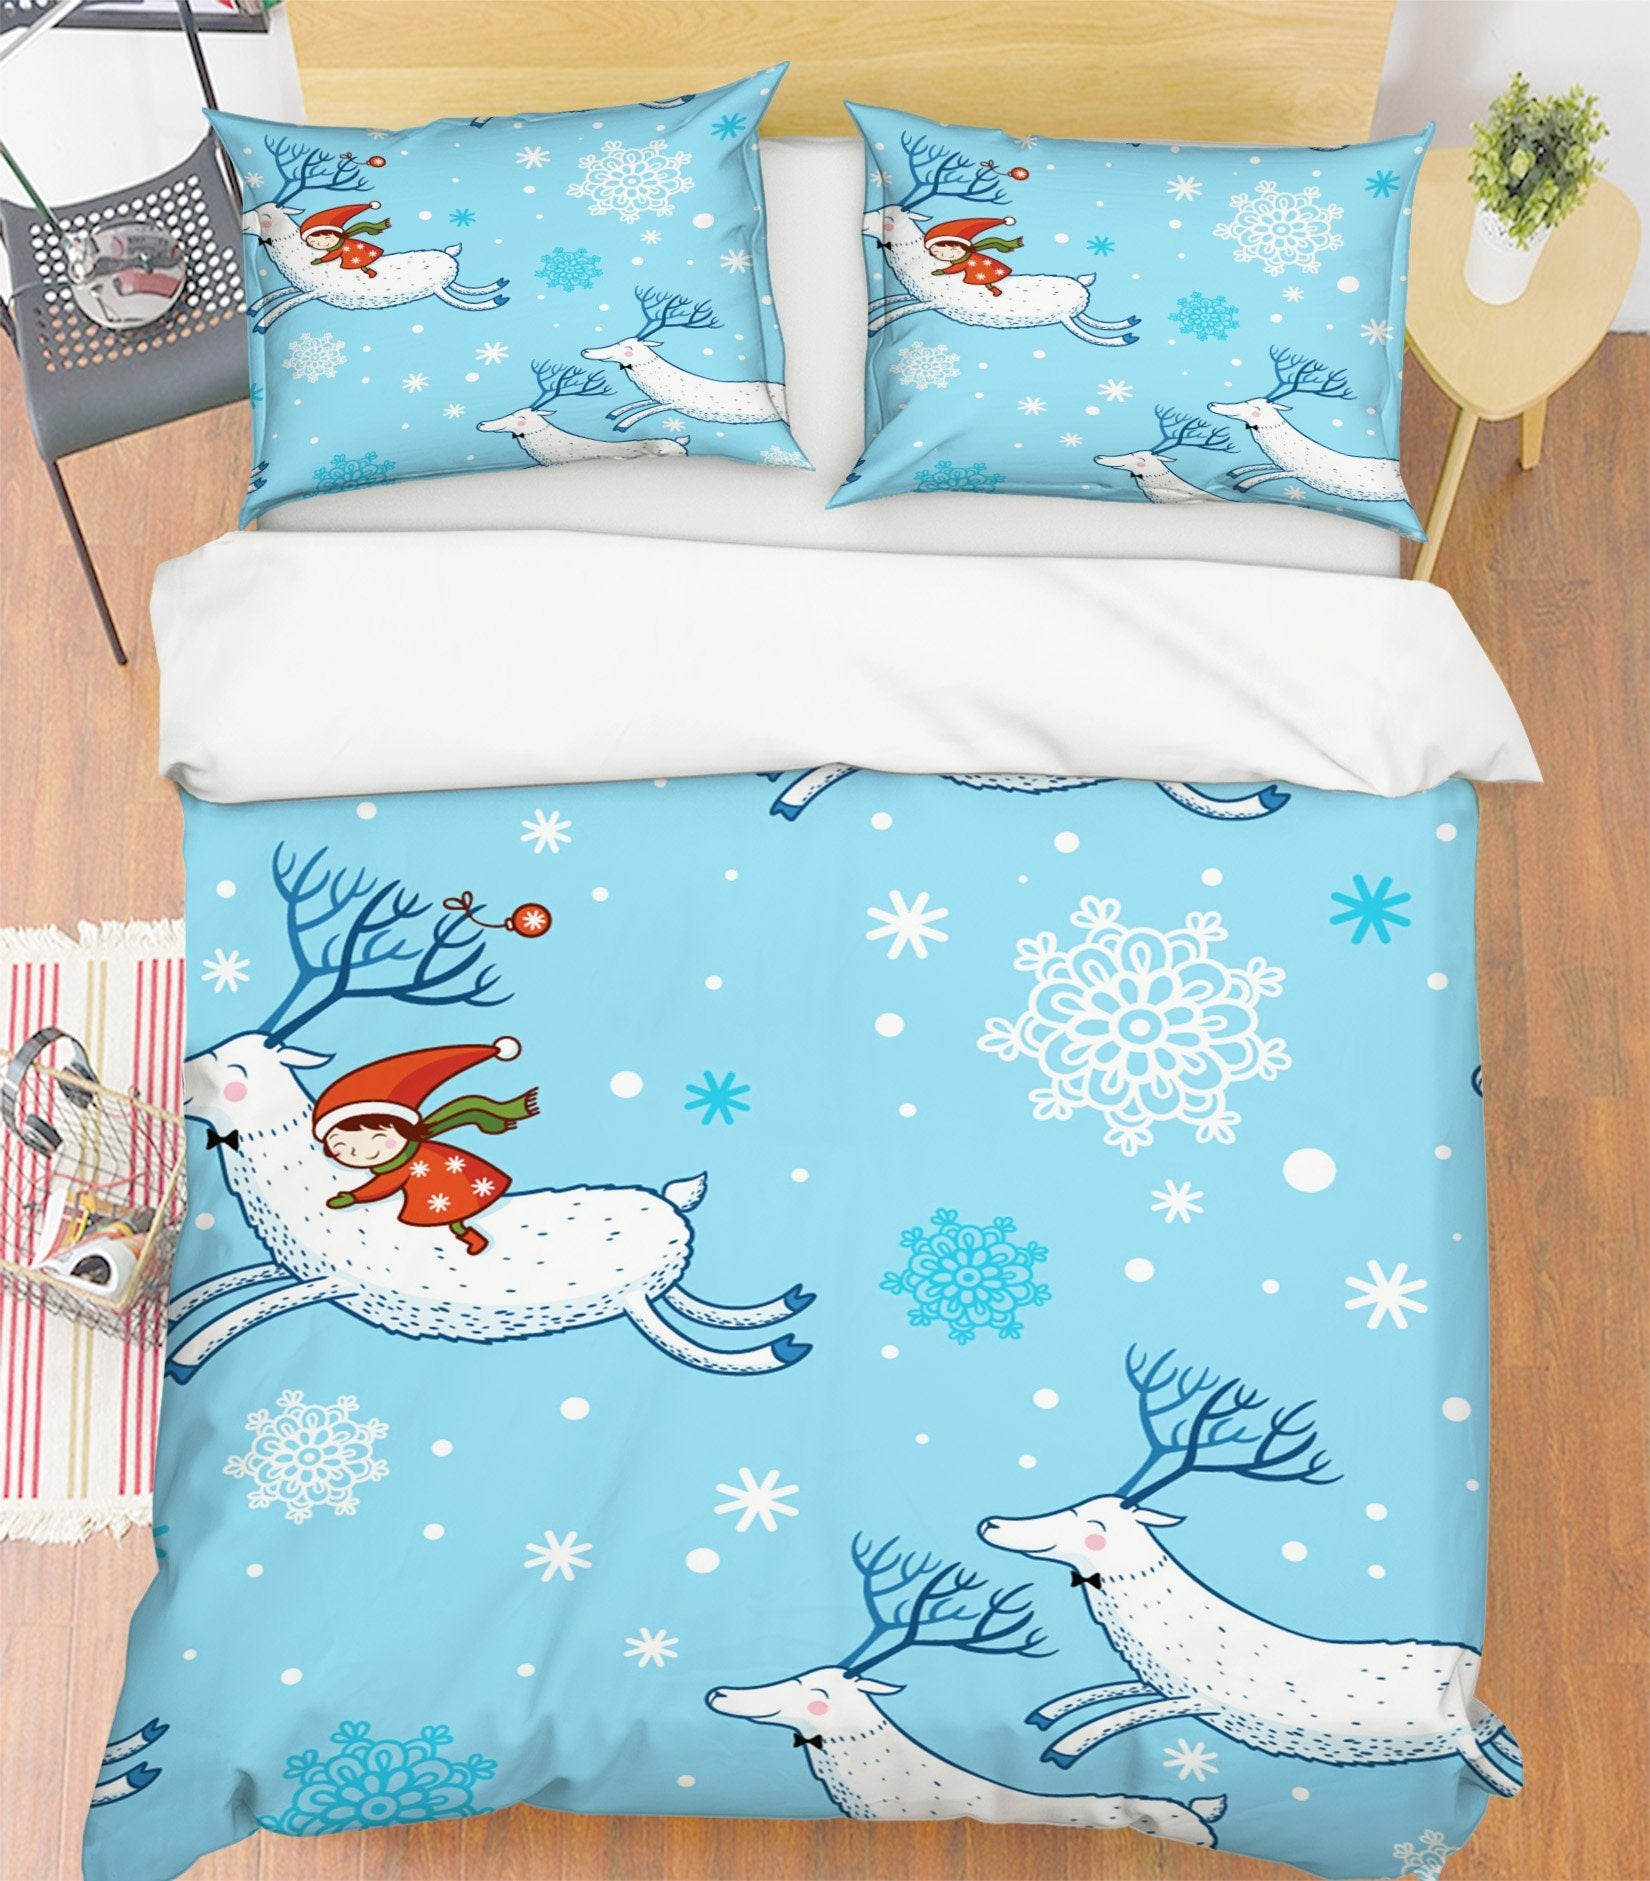 3D Christmas Cute White Deer 47 Bed Pillowcases Quilt Quiet Covers AJ Creativity Home